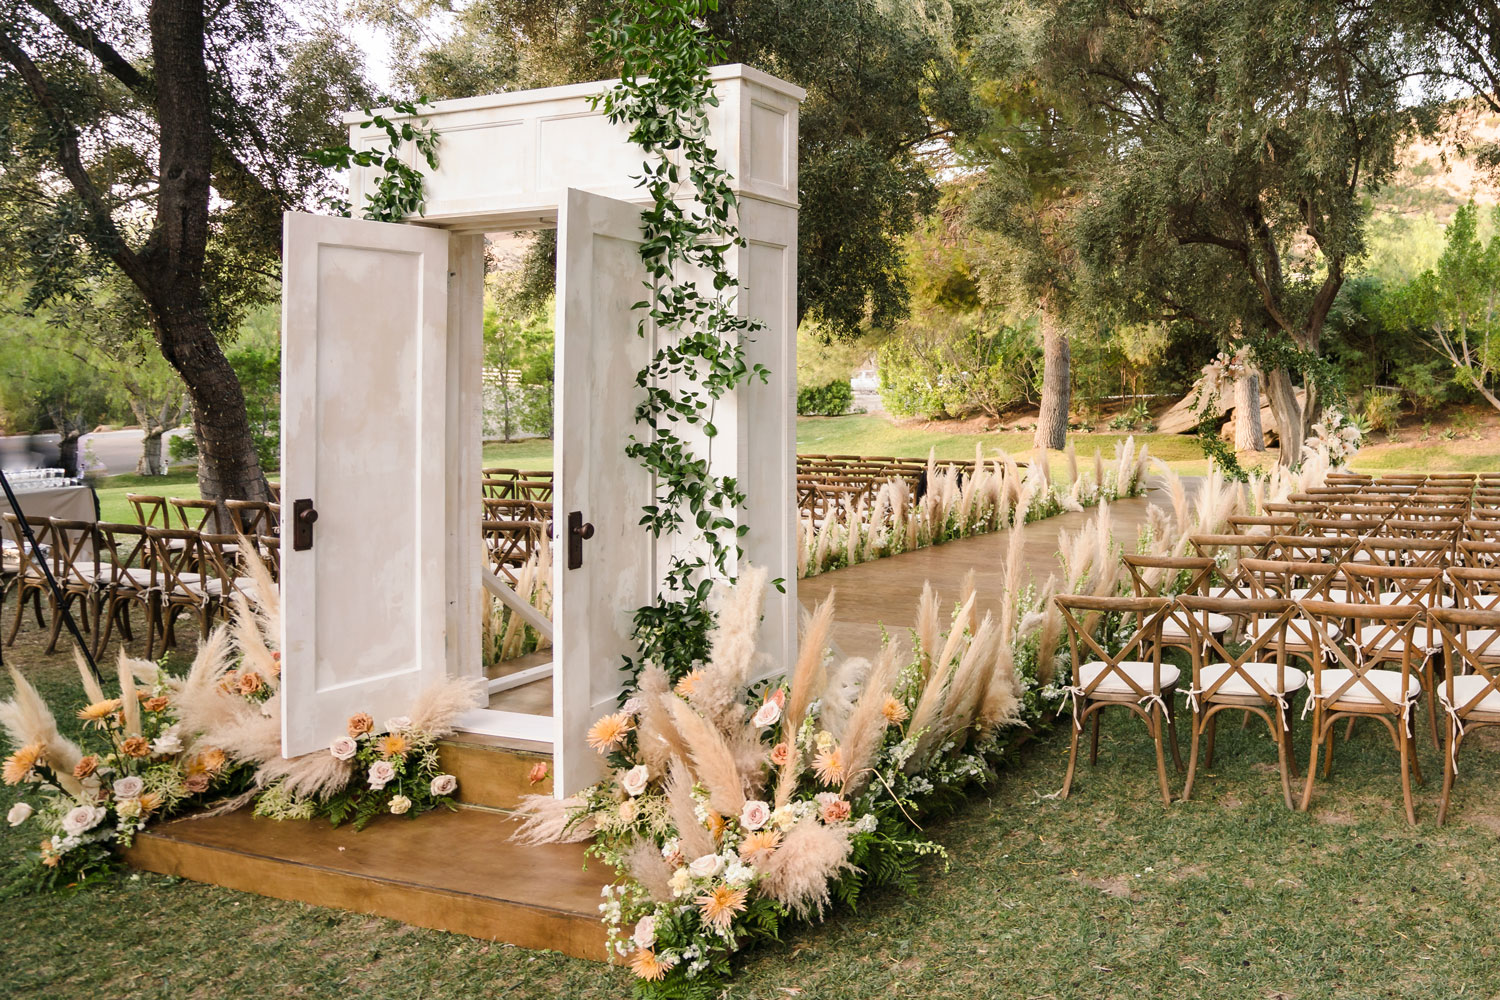 Top Chef Marcel Vigneron and Lauren Rae Levy real wedding planned by Tessa Lyn Events outdoor ceremony with doors to aisle